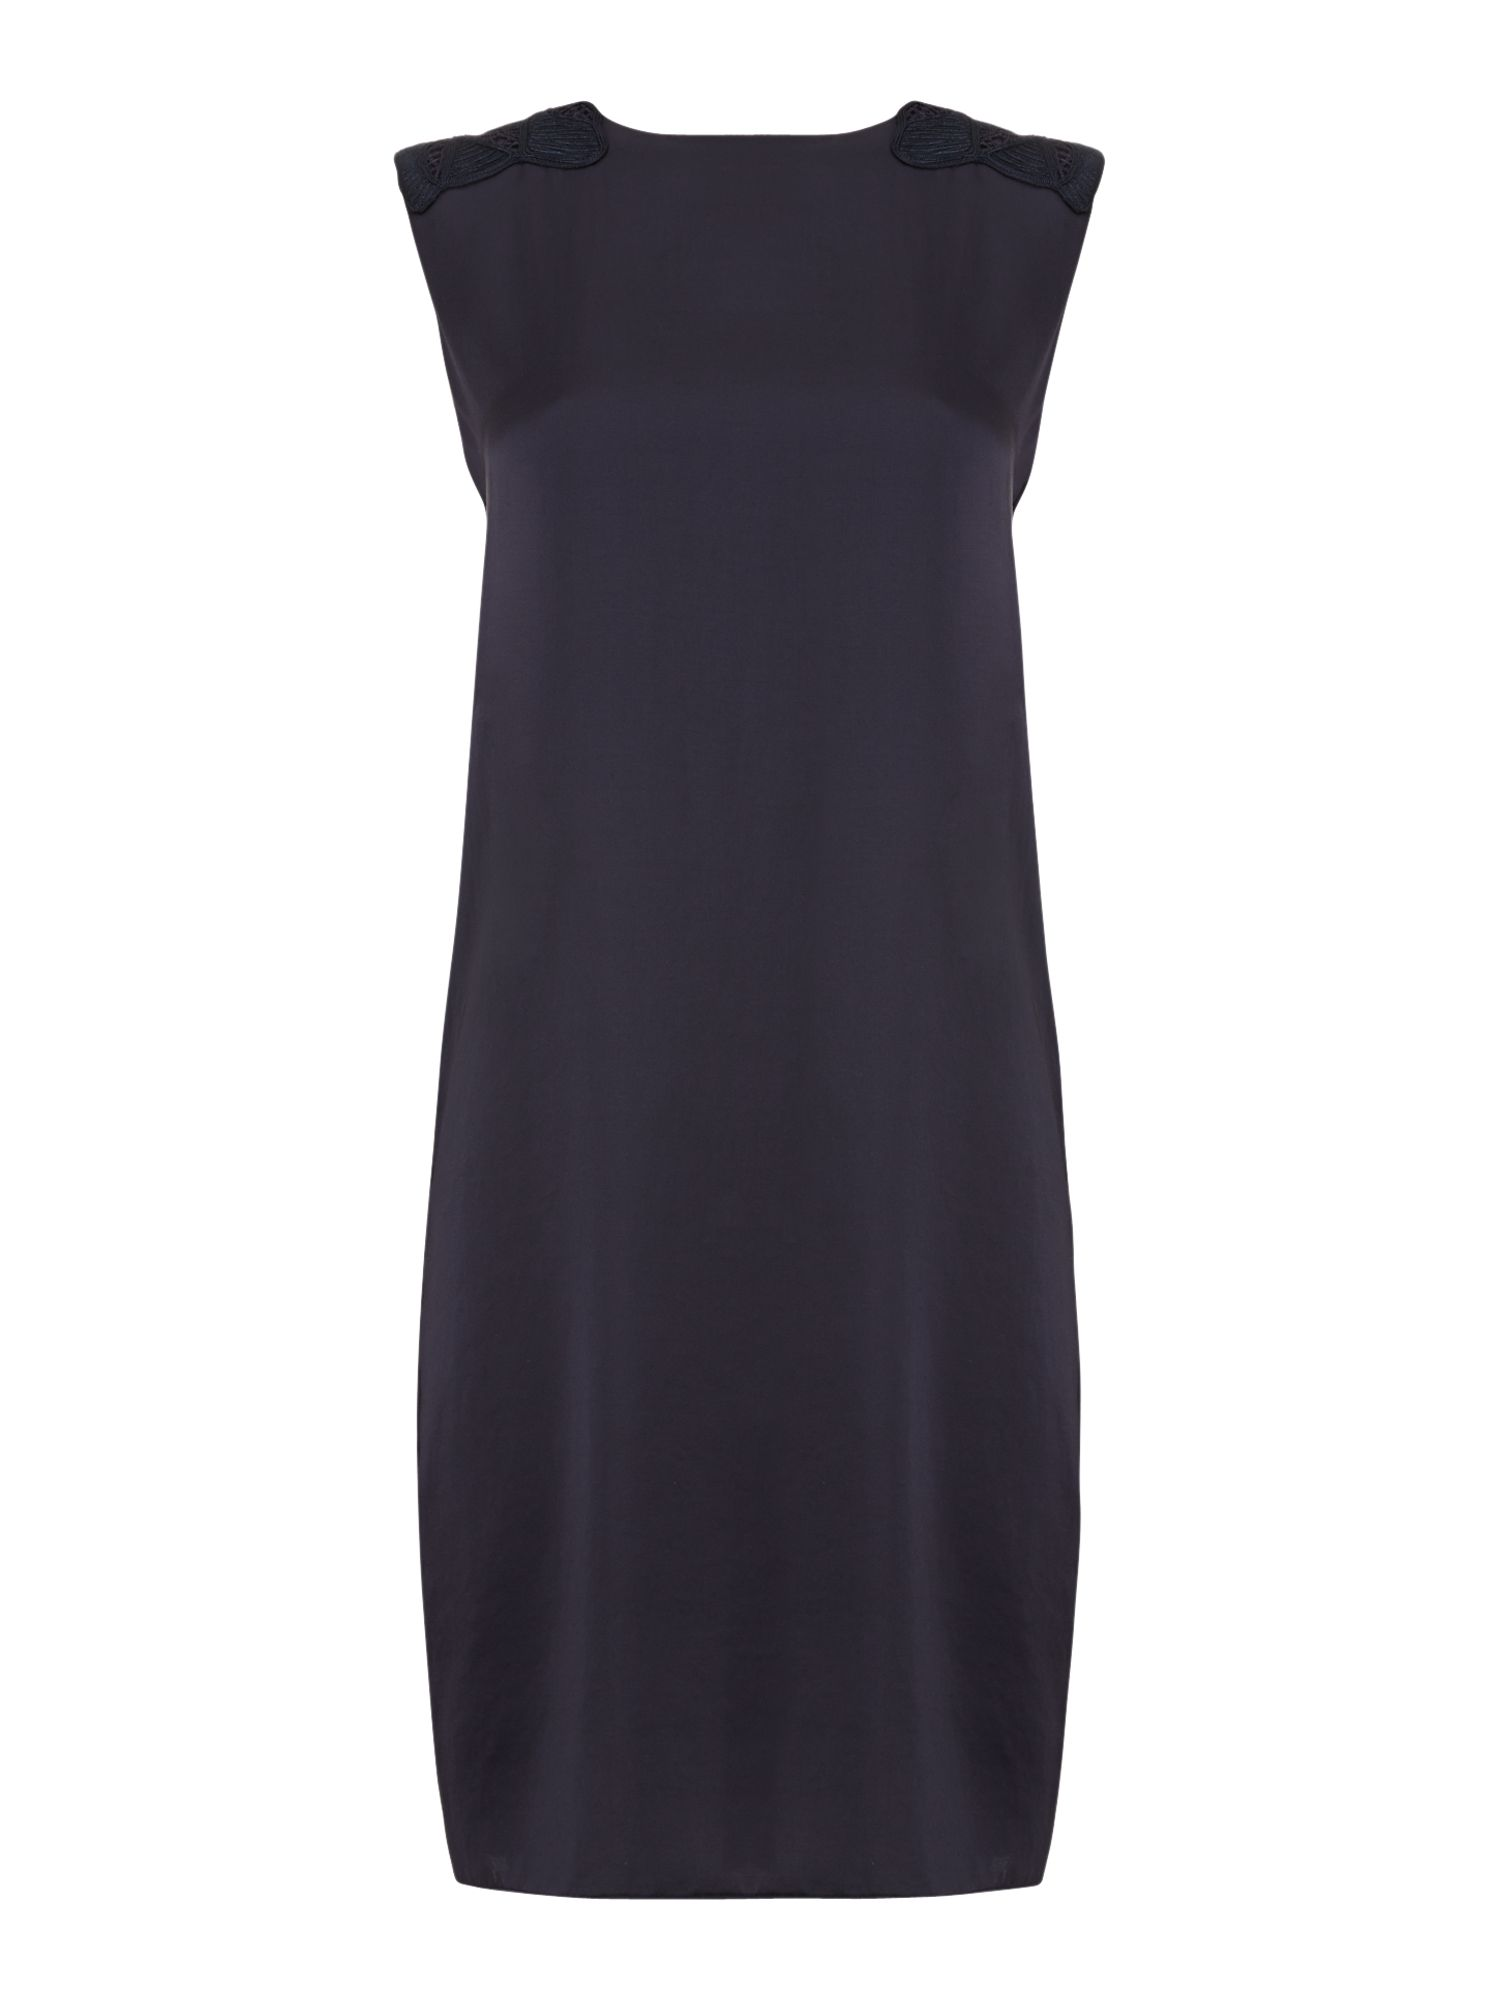 Sleeveless dress with shoulder detail